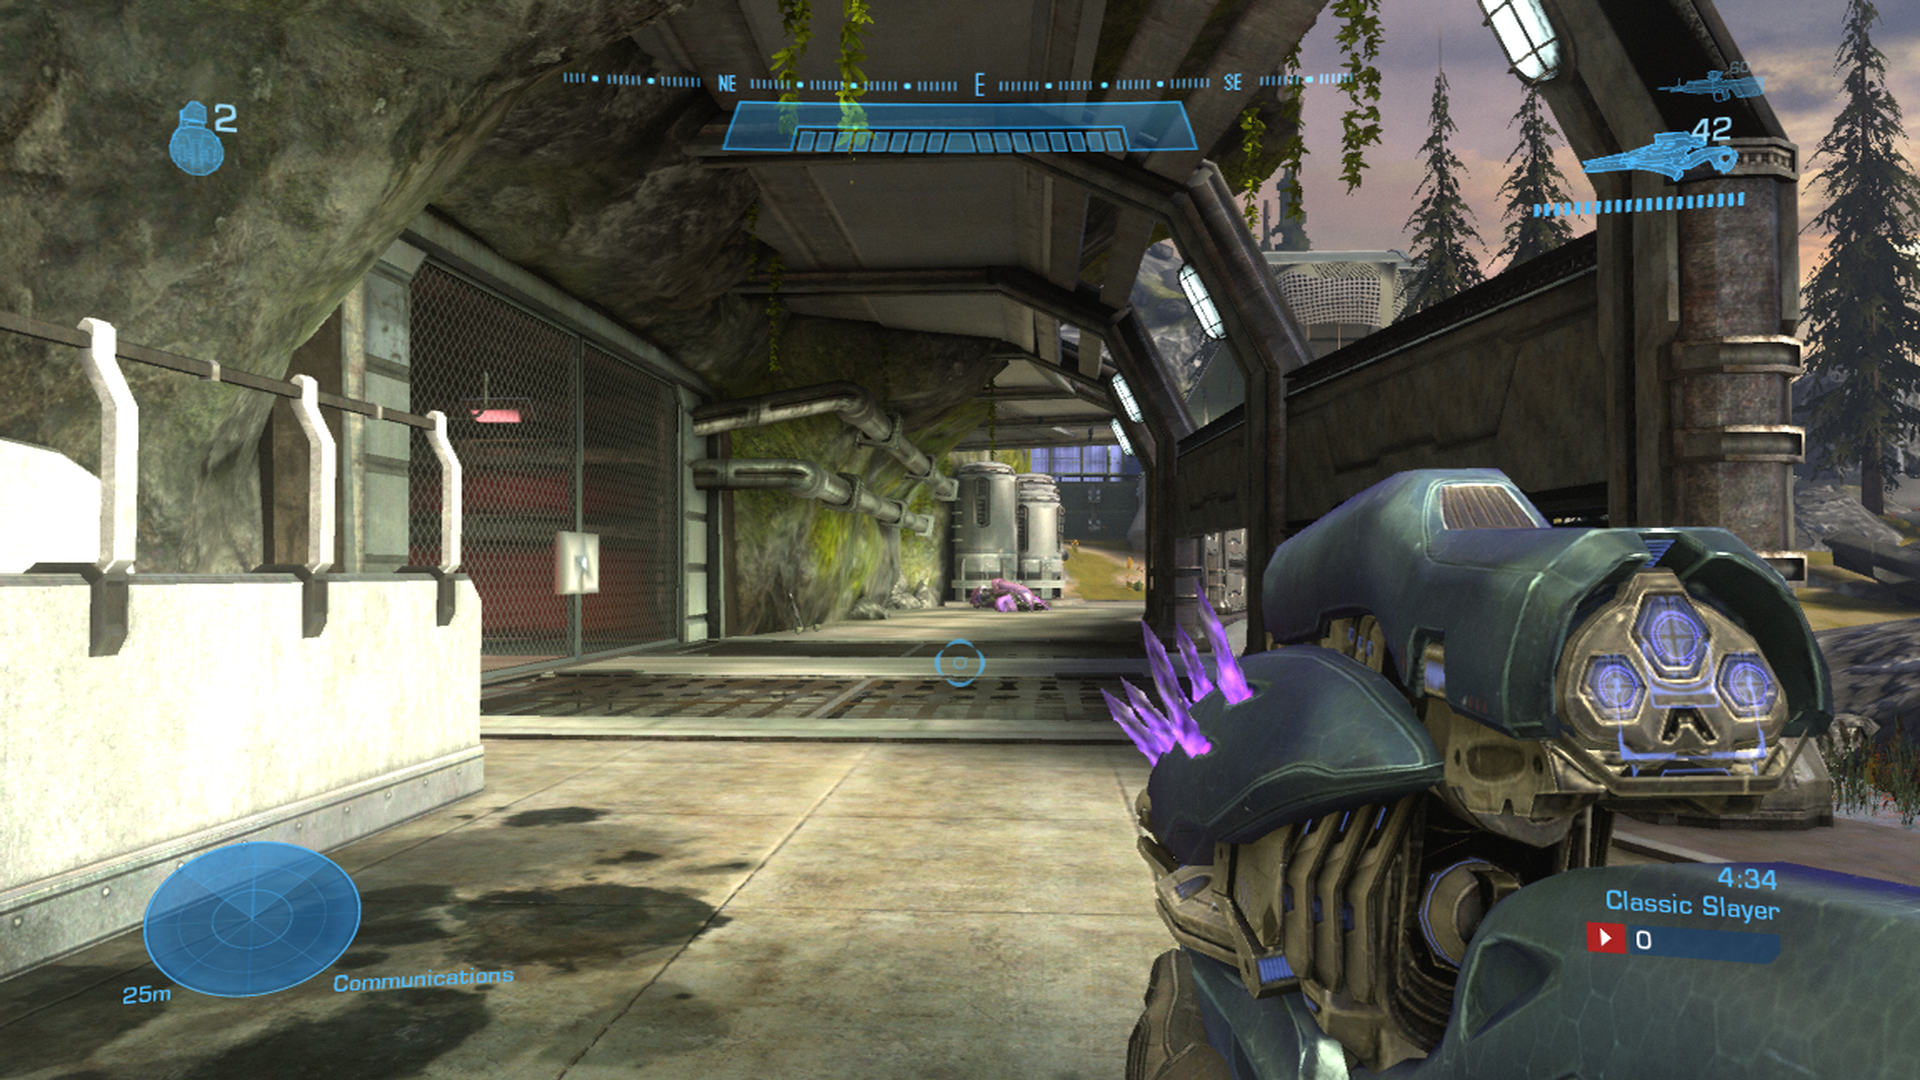 Halo: Reach - Defiant Map Pack Screenshots for Xbox 360